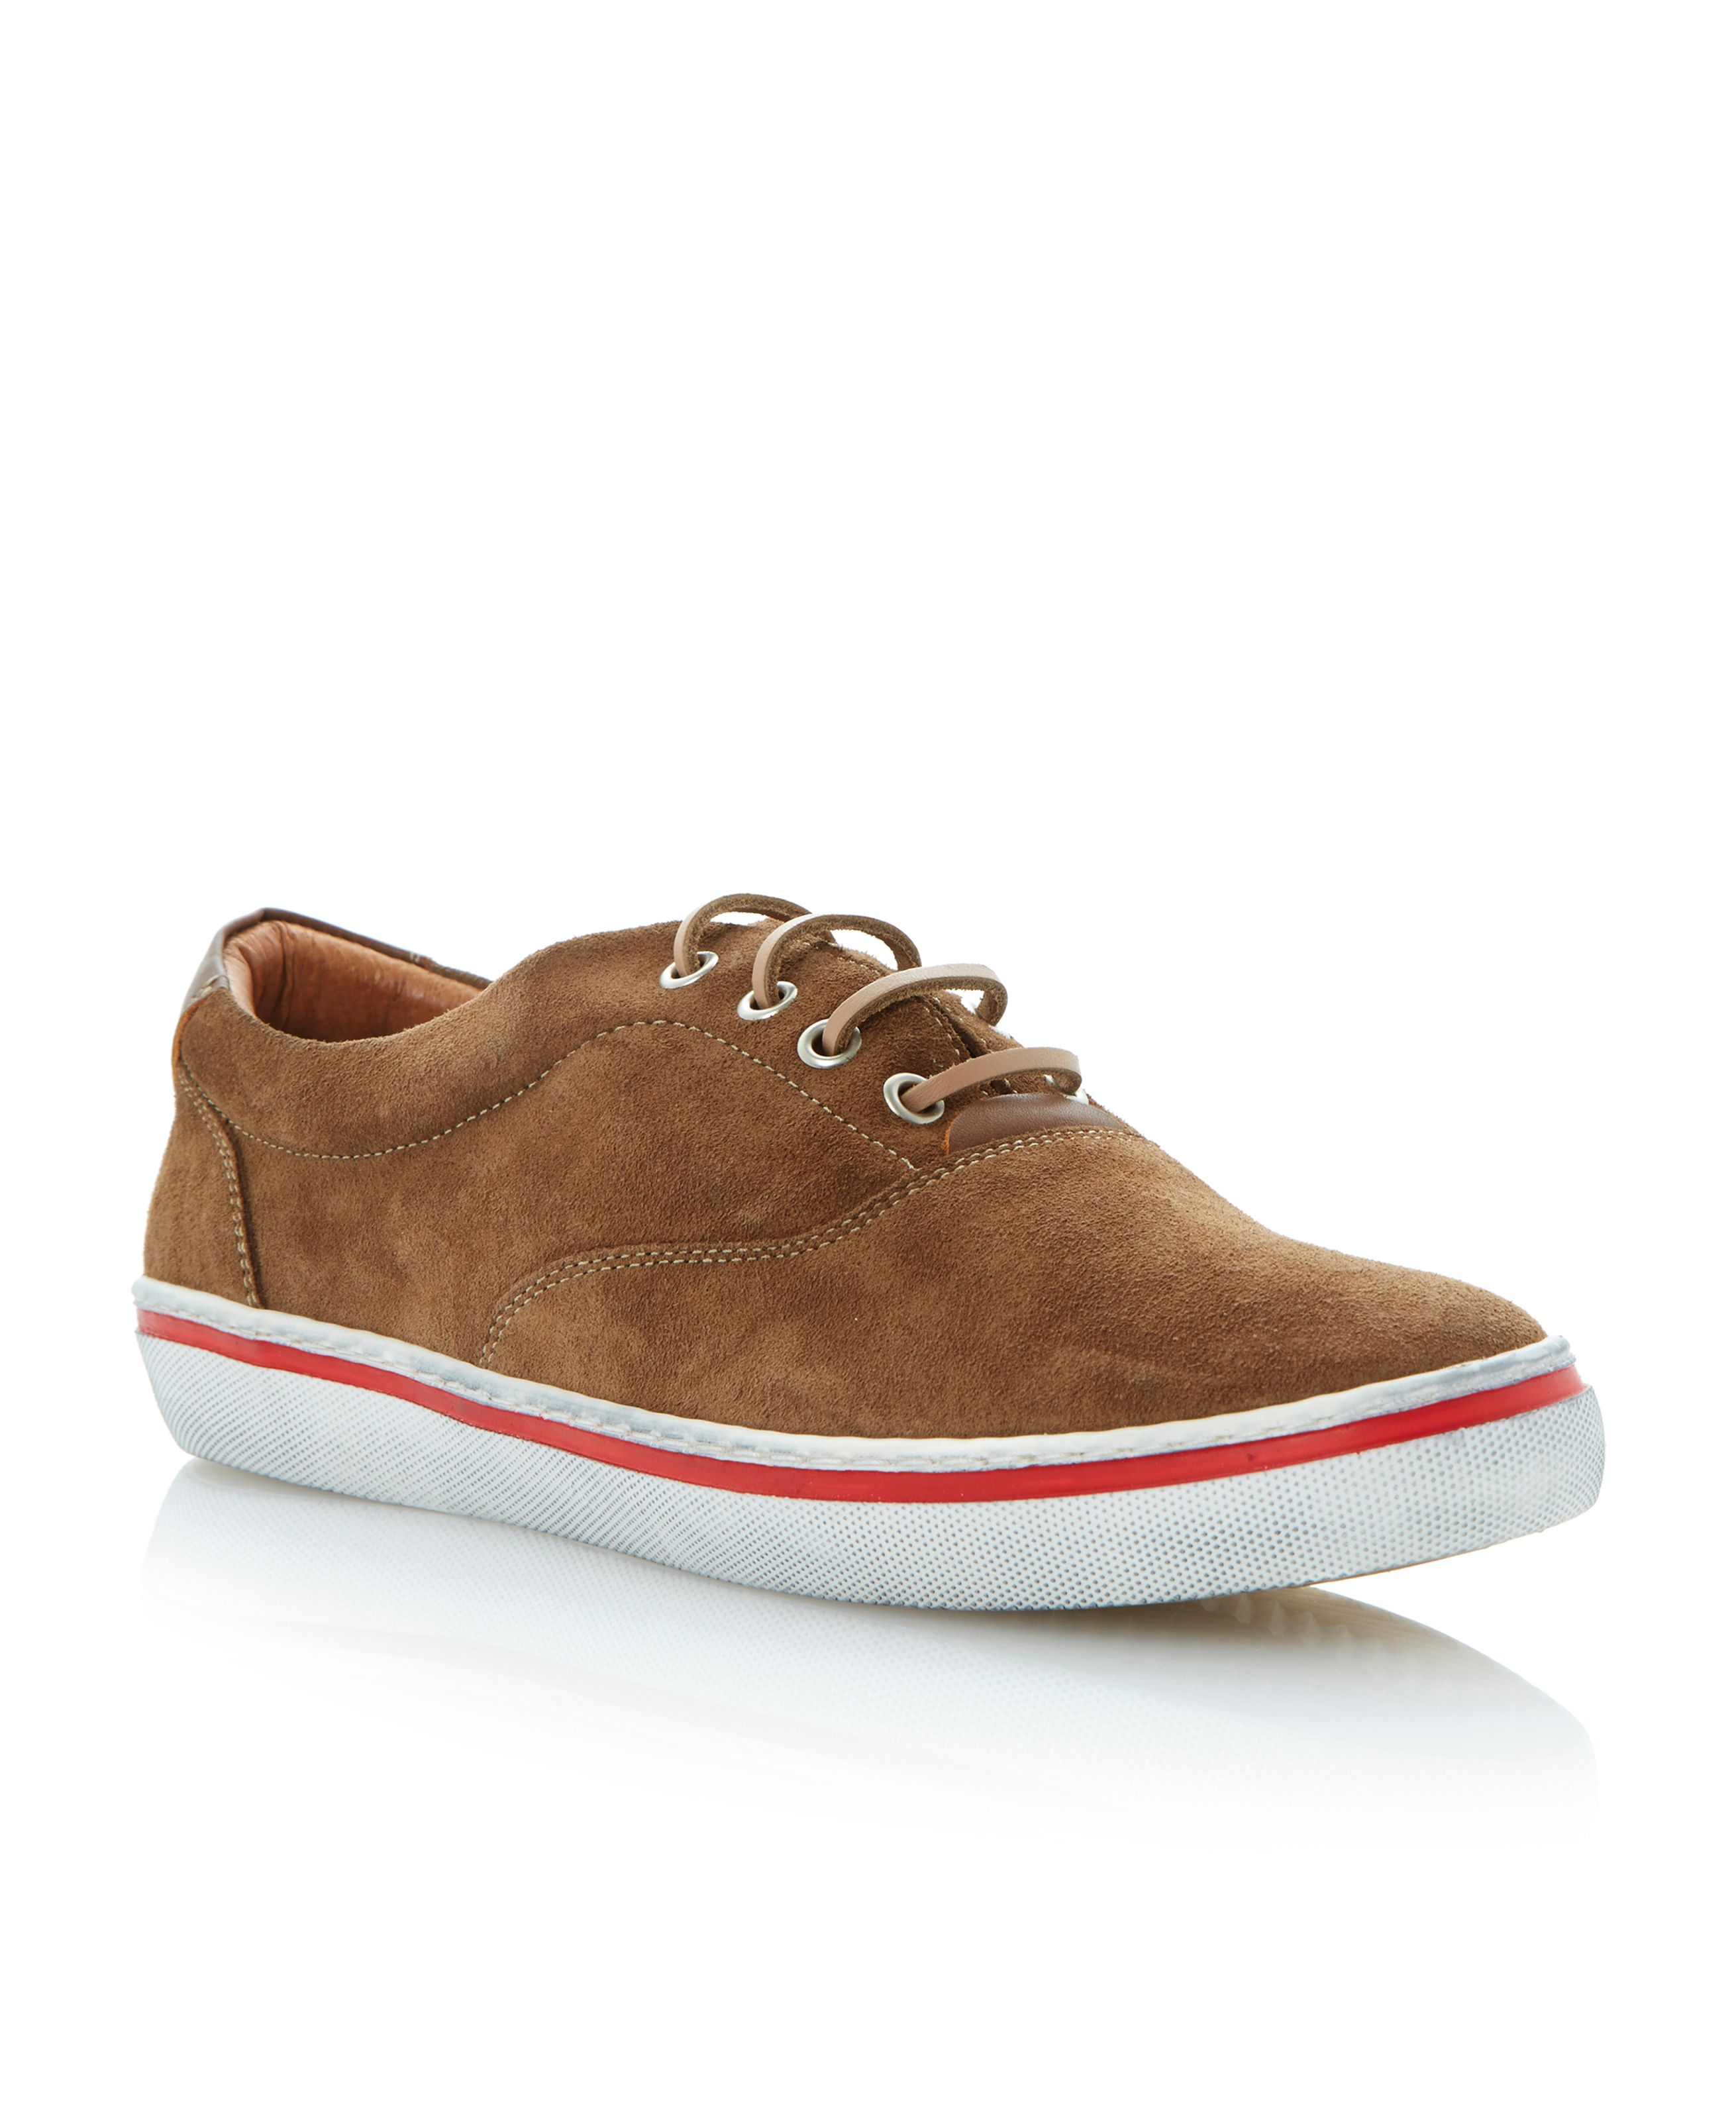 Truant lace up leather plimsolls